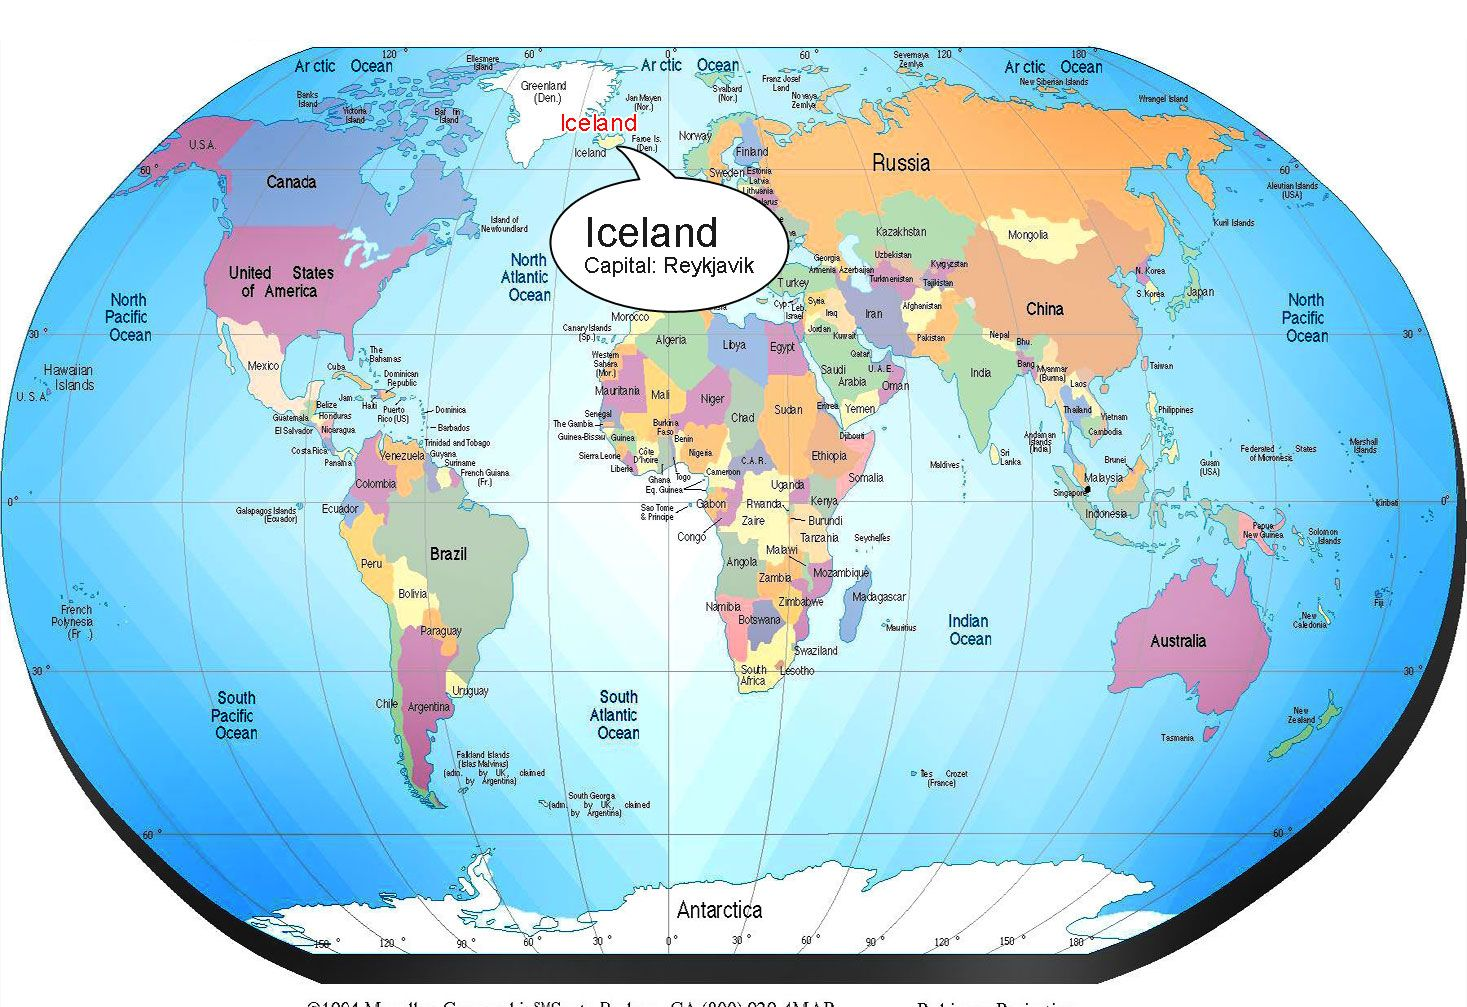 Iceland Location On World Map Iceland Get Free Image About Wiring Diagram